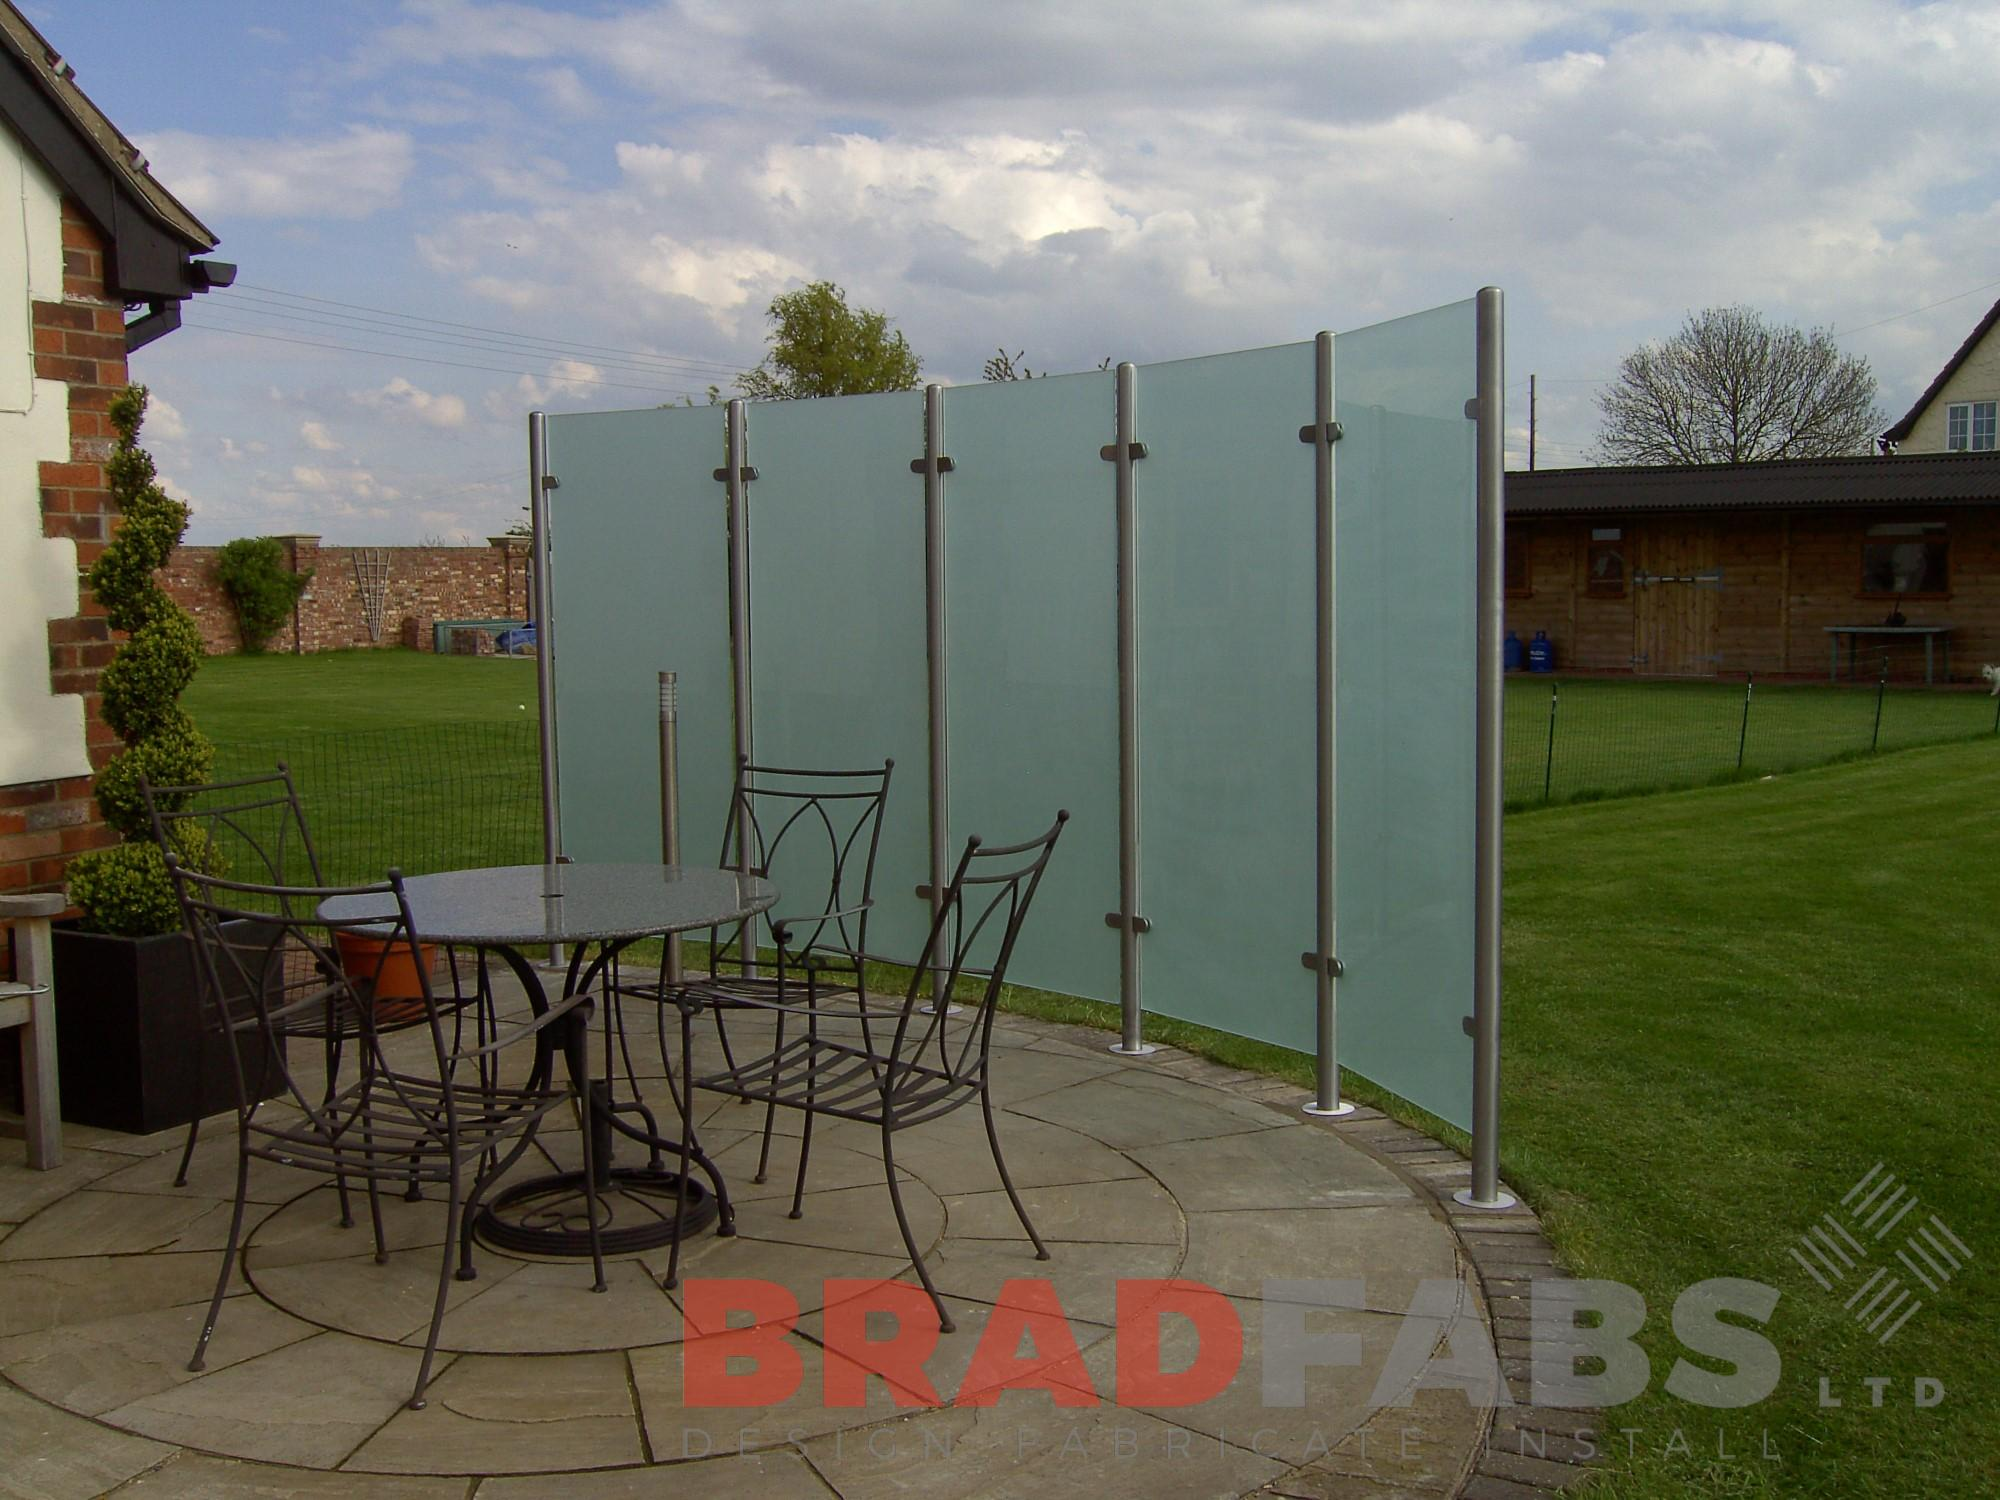 privacy screens fabricated in bradford, frosted glass screens manufactured by bradfabs